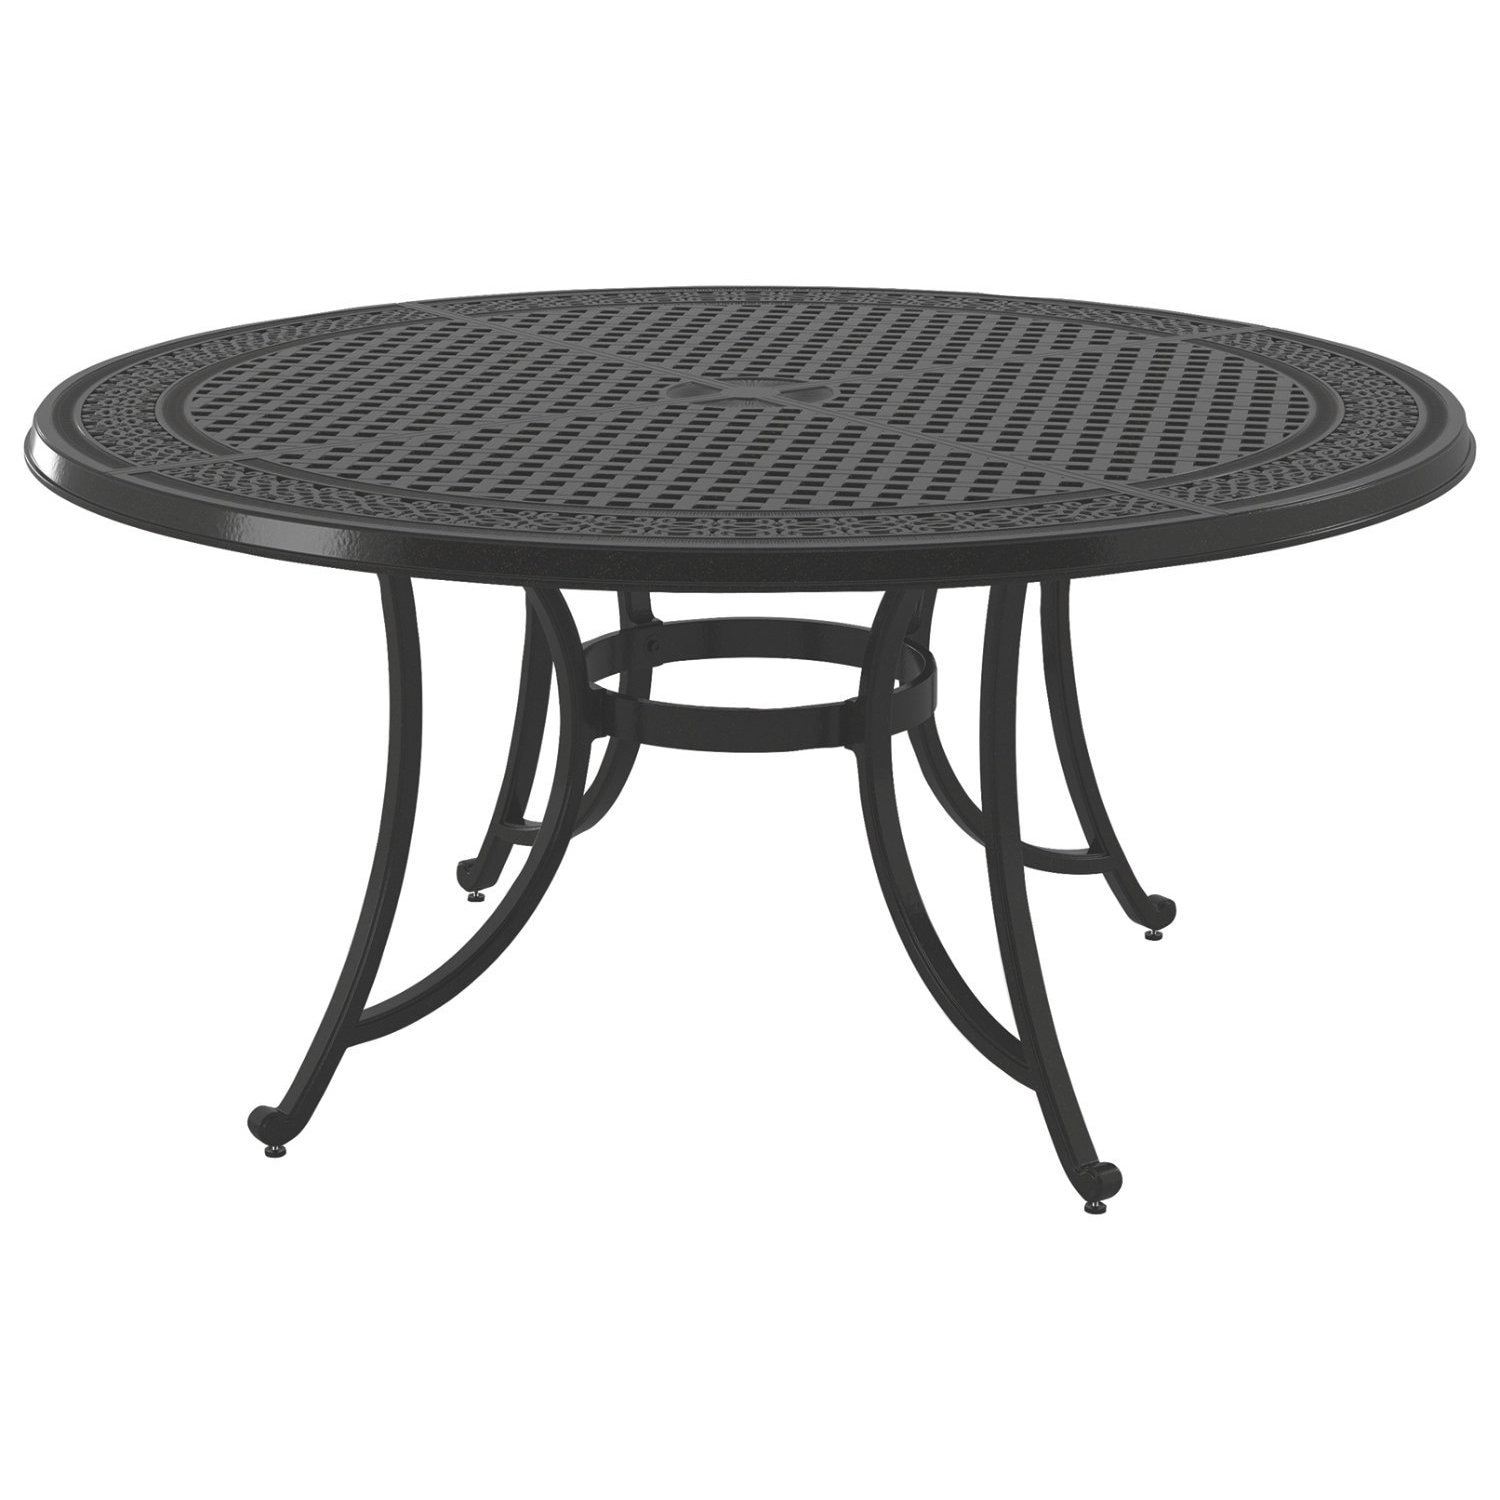 Signature Design By Ashley Burnella Brown Outdoor Large Round Dining Table With Umbrella Option